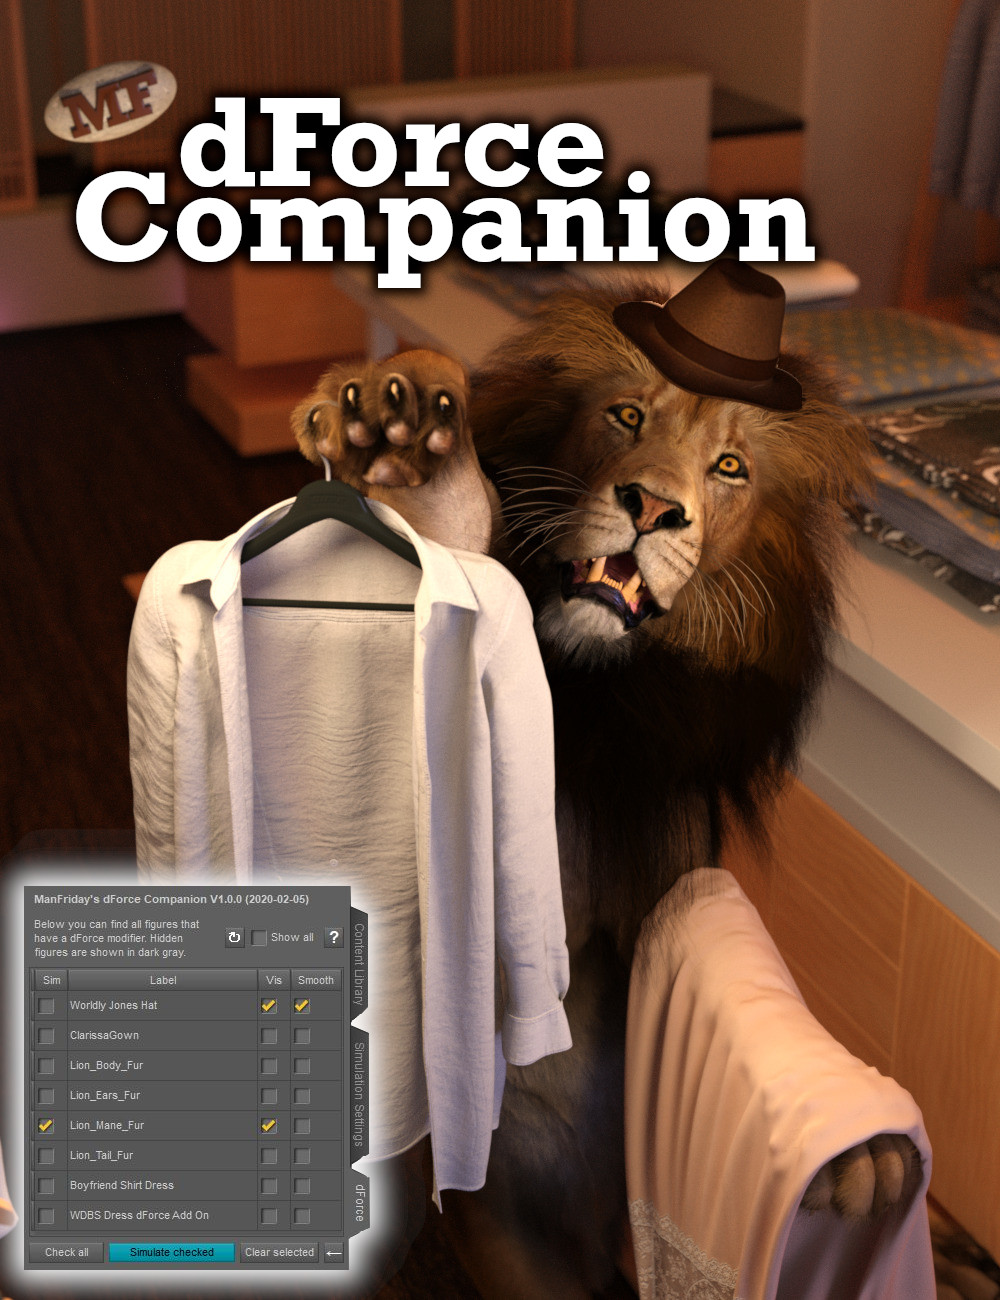 dForce Companion by: ManFriday, 3D Models by Daz 3D